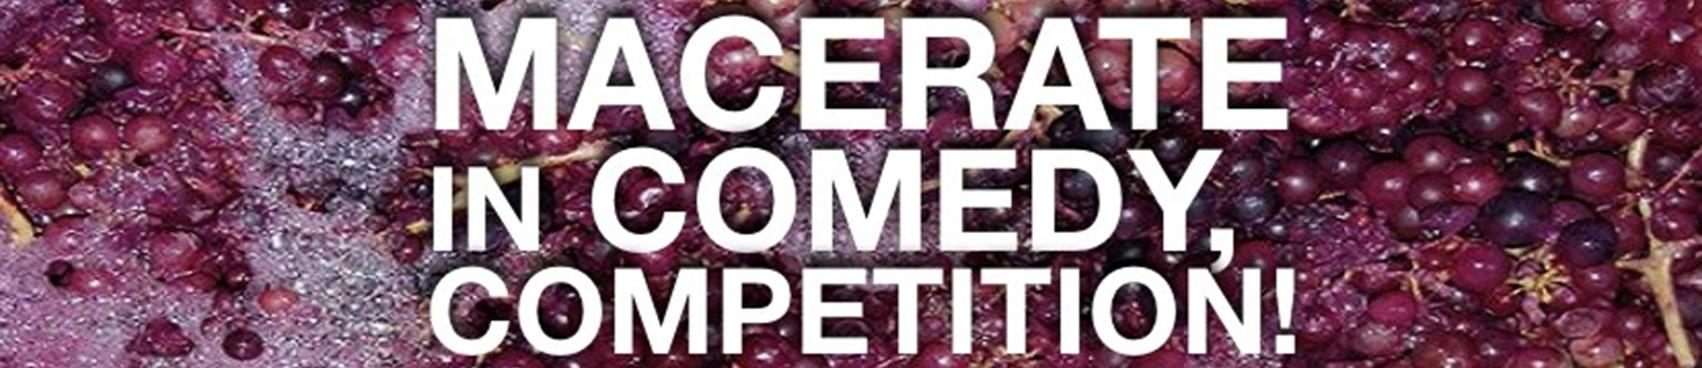 Purchase Tickets to Macerate in Comedy Competition! at The Laugh Cellar on CellarPass